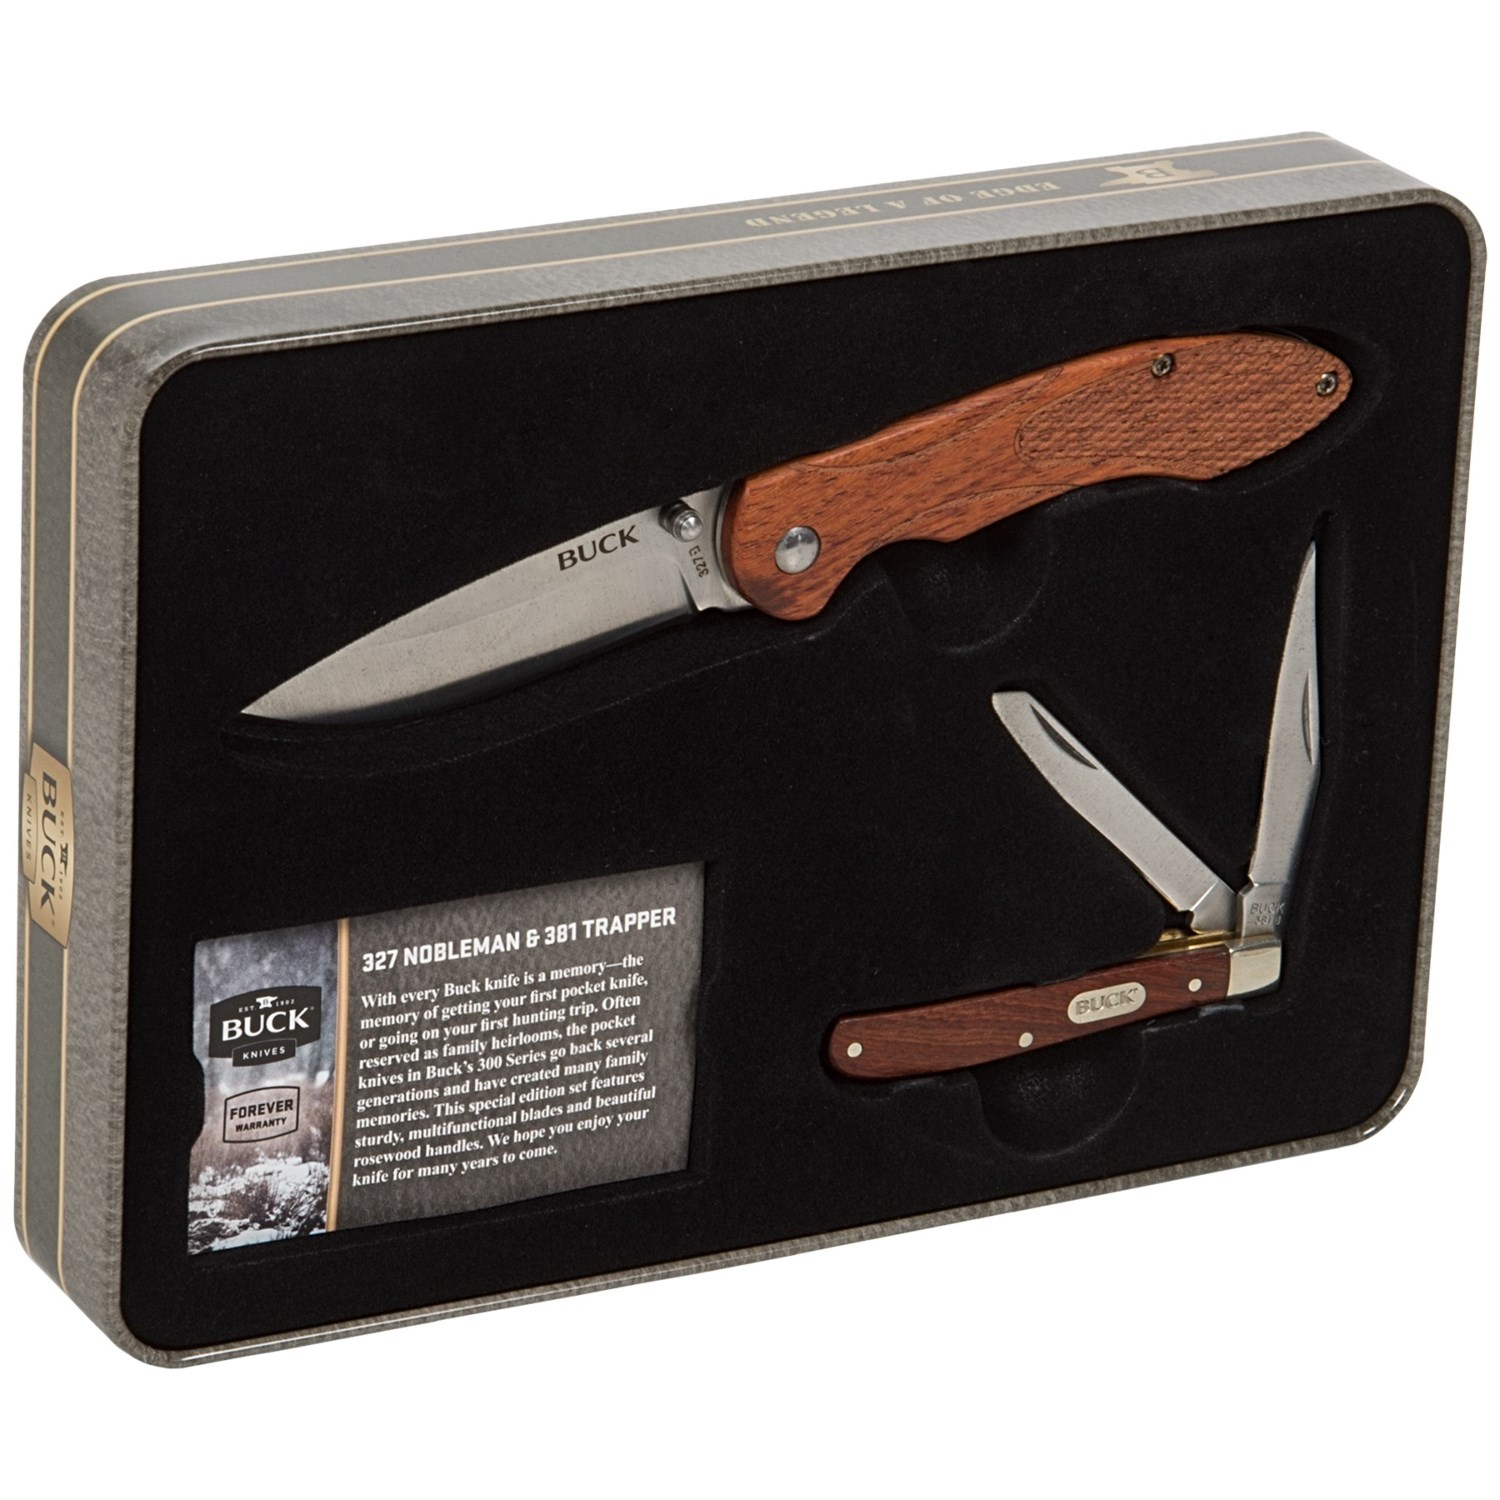 buck pocket knife dating Buck knives is an american knife manufacturer founded in san diego, california and now located in post falls, idaho the company has a long history through.